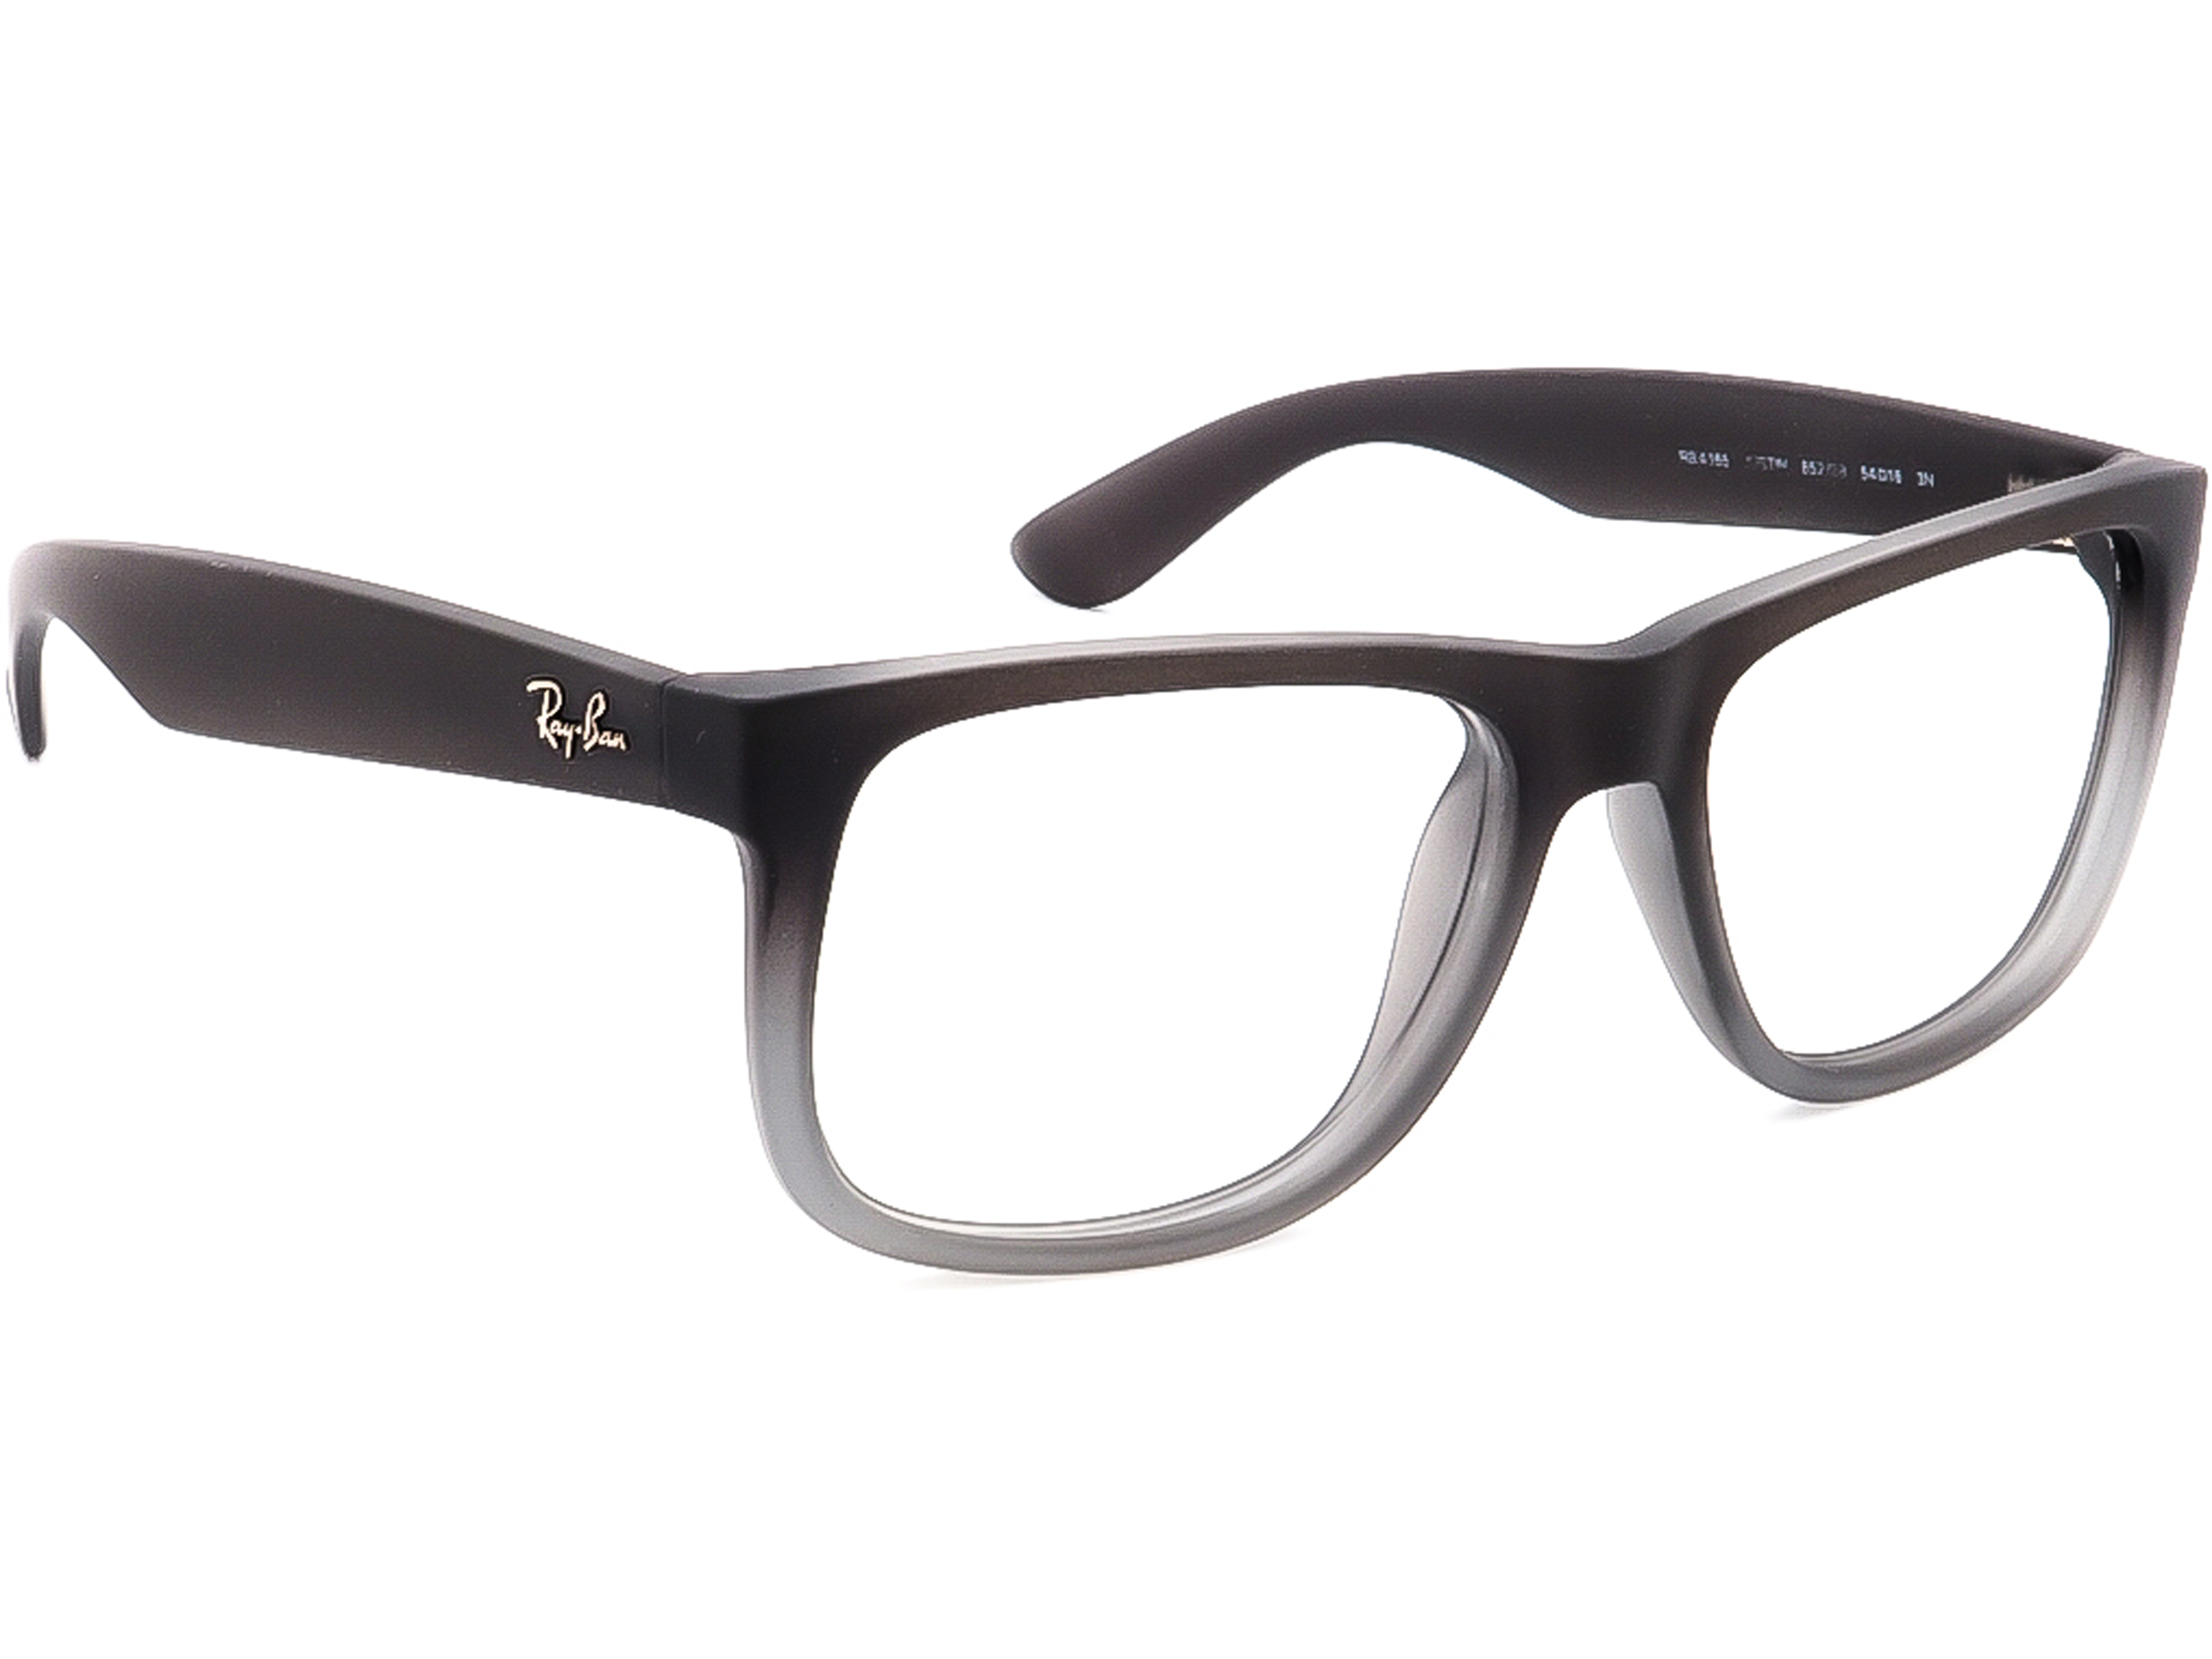 Ray Ban RB 4165 Justin 852/68 Sunglasses Frame Only